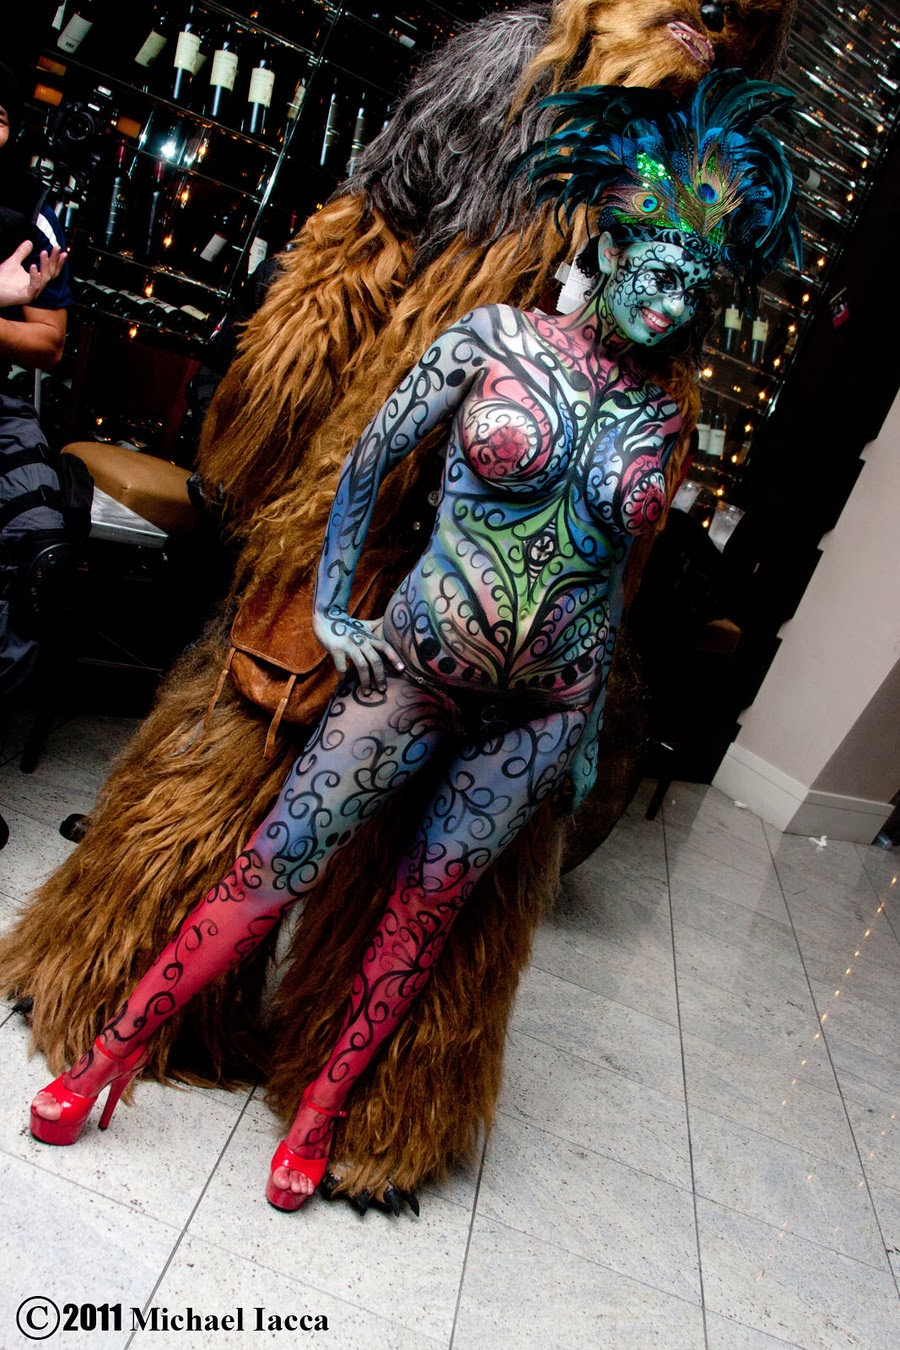 body paint coloré devant cosplay de Chewbacca